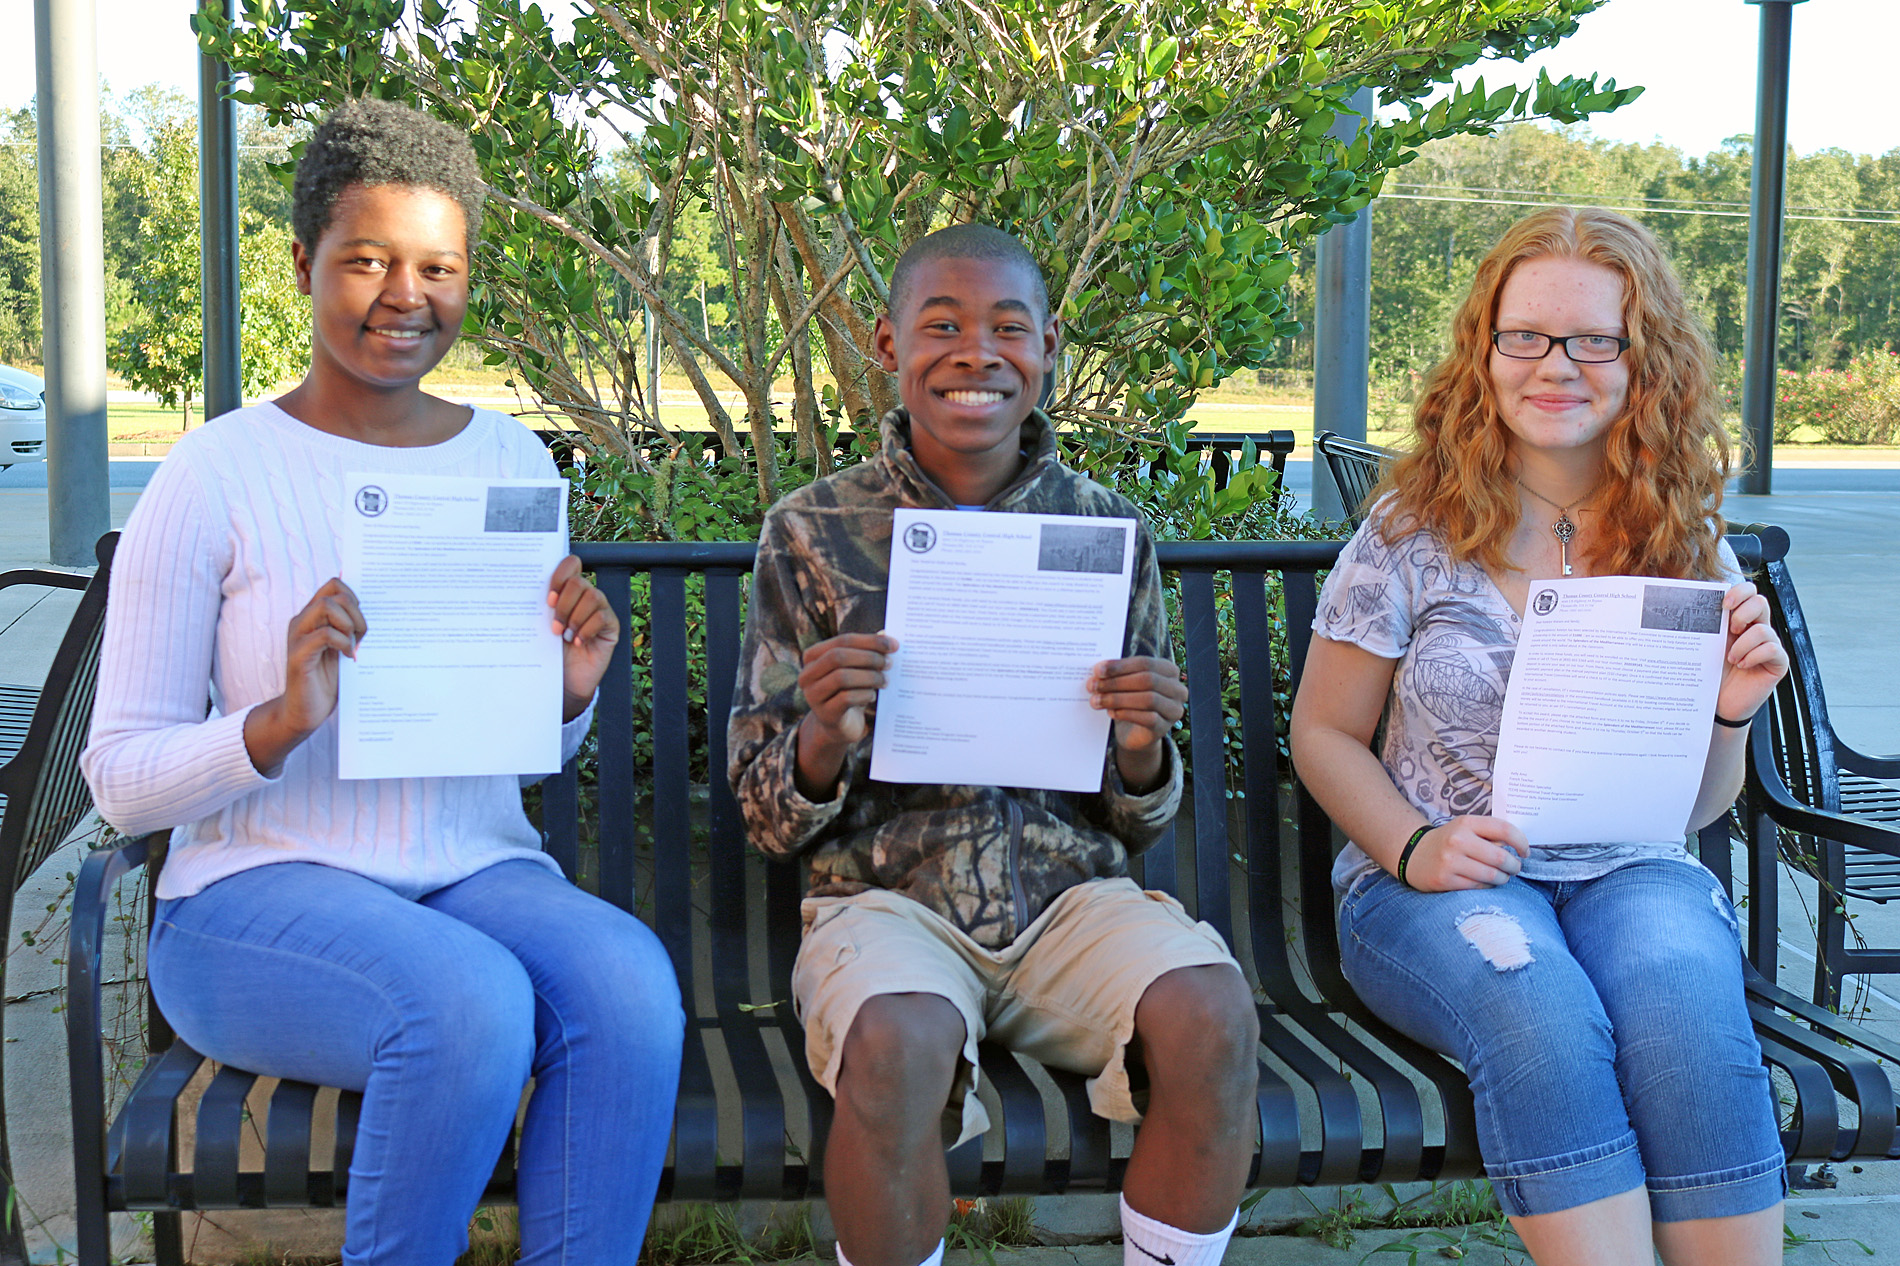 "TCCHS ""Splendors of the Mediterranean"" scholarship recipients include: (left to right) Za'Miriya Sneed, Shadrick Hollis and Katelyn Watson.  Not pictured are Abigail Beamon and Britney White."